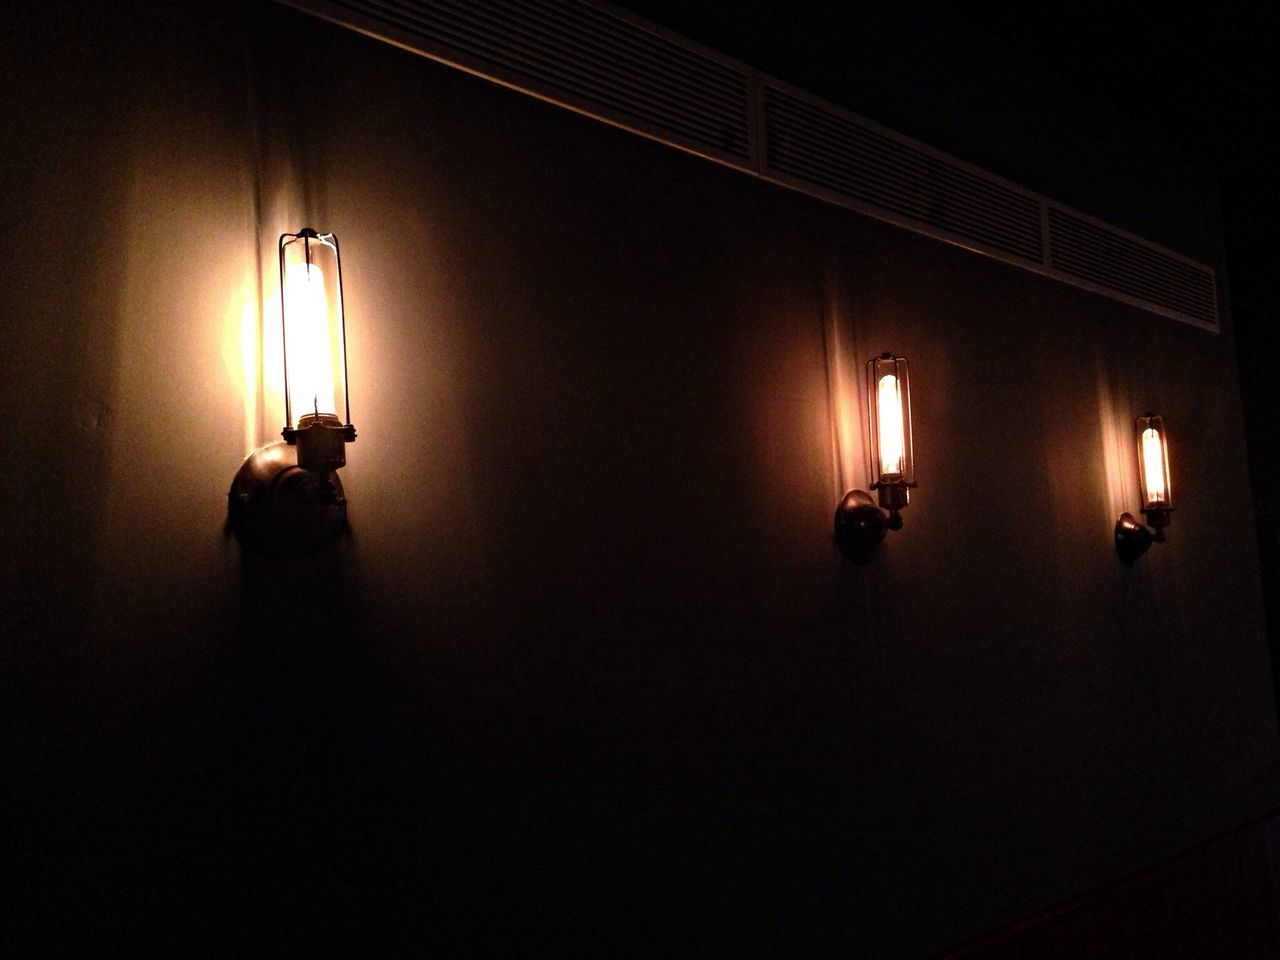 illuminated, lighting equipment, night, burning, glowing, indoors, no people, candle, flame, architecture, close-up